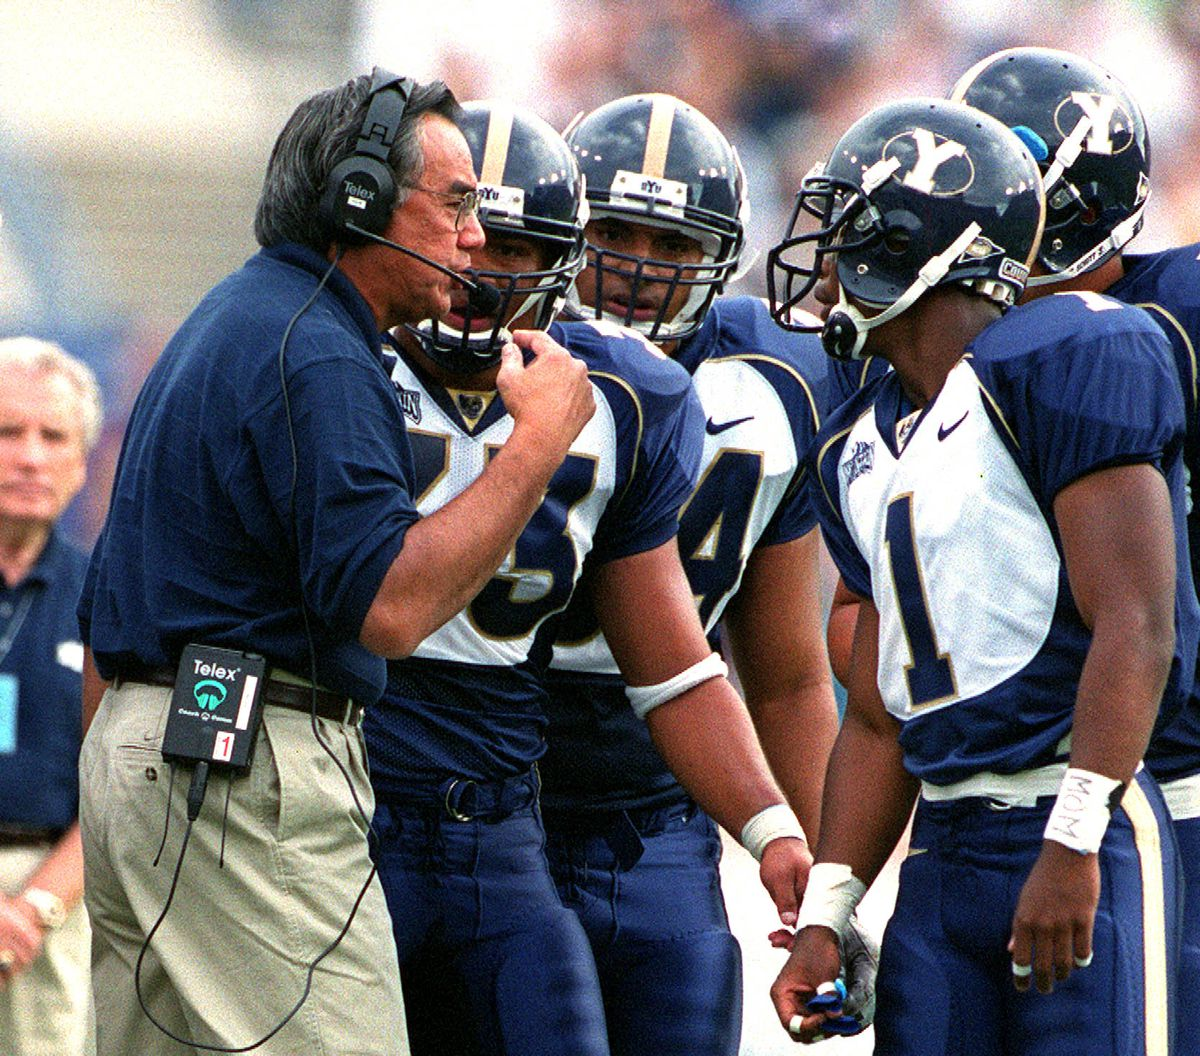 BYU offensive coordinator Norm Chow, left, instructs players during a timeout during their game against Washington on Sept. 9, 1999.